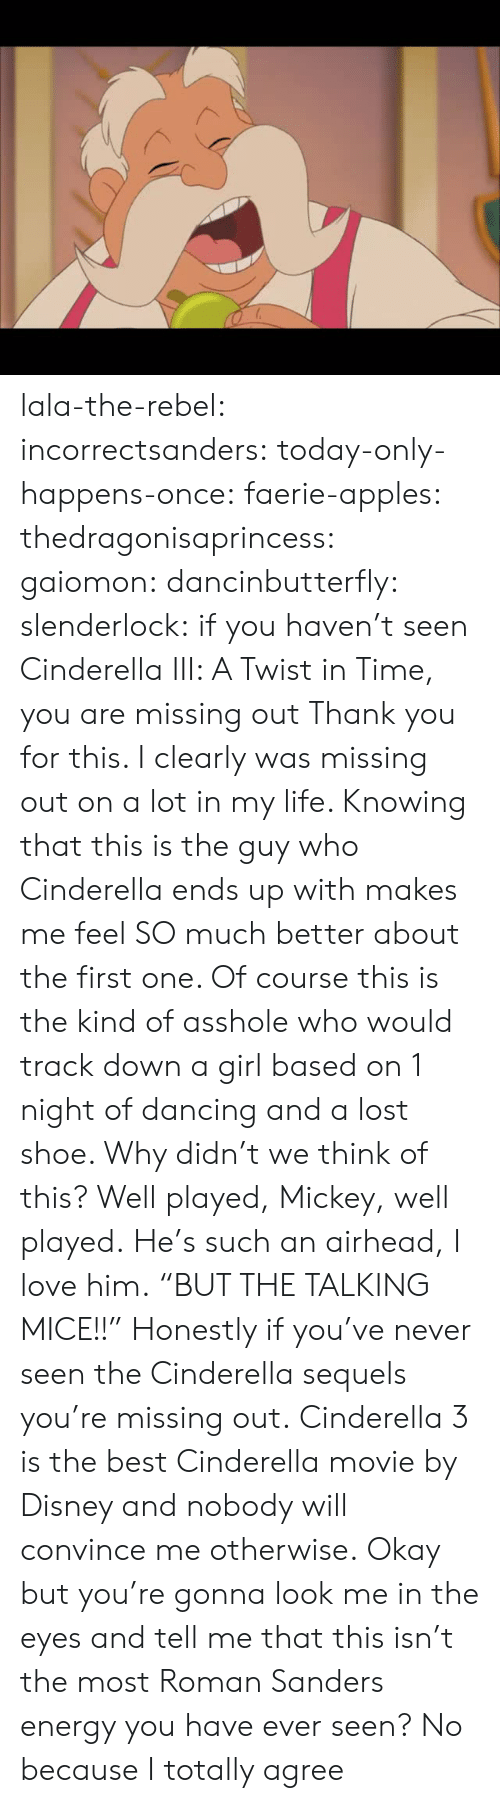 "Cinderella : lala-the-rebel:  incorrectsanders:   today-only-happens-once:   faerie-apples:  thedragonisaprincess:  gaiomon:  dancinbutterfly:  slenderlock: if you haven't seen Cinderella III: A Twist in Time, you are missing out Thank you for this. I clearly was missing out on a lot in my life. Knowing that this is the guy who Cinderella ends up with makes me feel SO much better about the first one. Of course this is the kind of asshole who would track down a girl based on 1 night of dancing and a lost shoe. Why didn't we think of this? Well played, Mickey, well played.  He's such an airhead, I love him.  ""BUT THE TALKING MICE!!""  Honestly if you've never seen the Cinderella sequels you're missing out.  Cinderella 3 is the best Cinderella movie by Disney and nobody will convince me otherwise.   Okay but you're gonna look me in the eyes and tell me that this isn't the most Roman Sanders energy you have ever seen?    No because I totally agree"